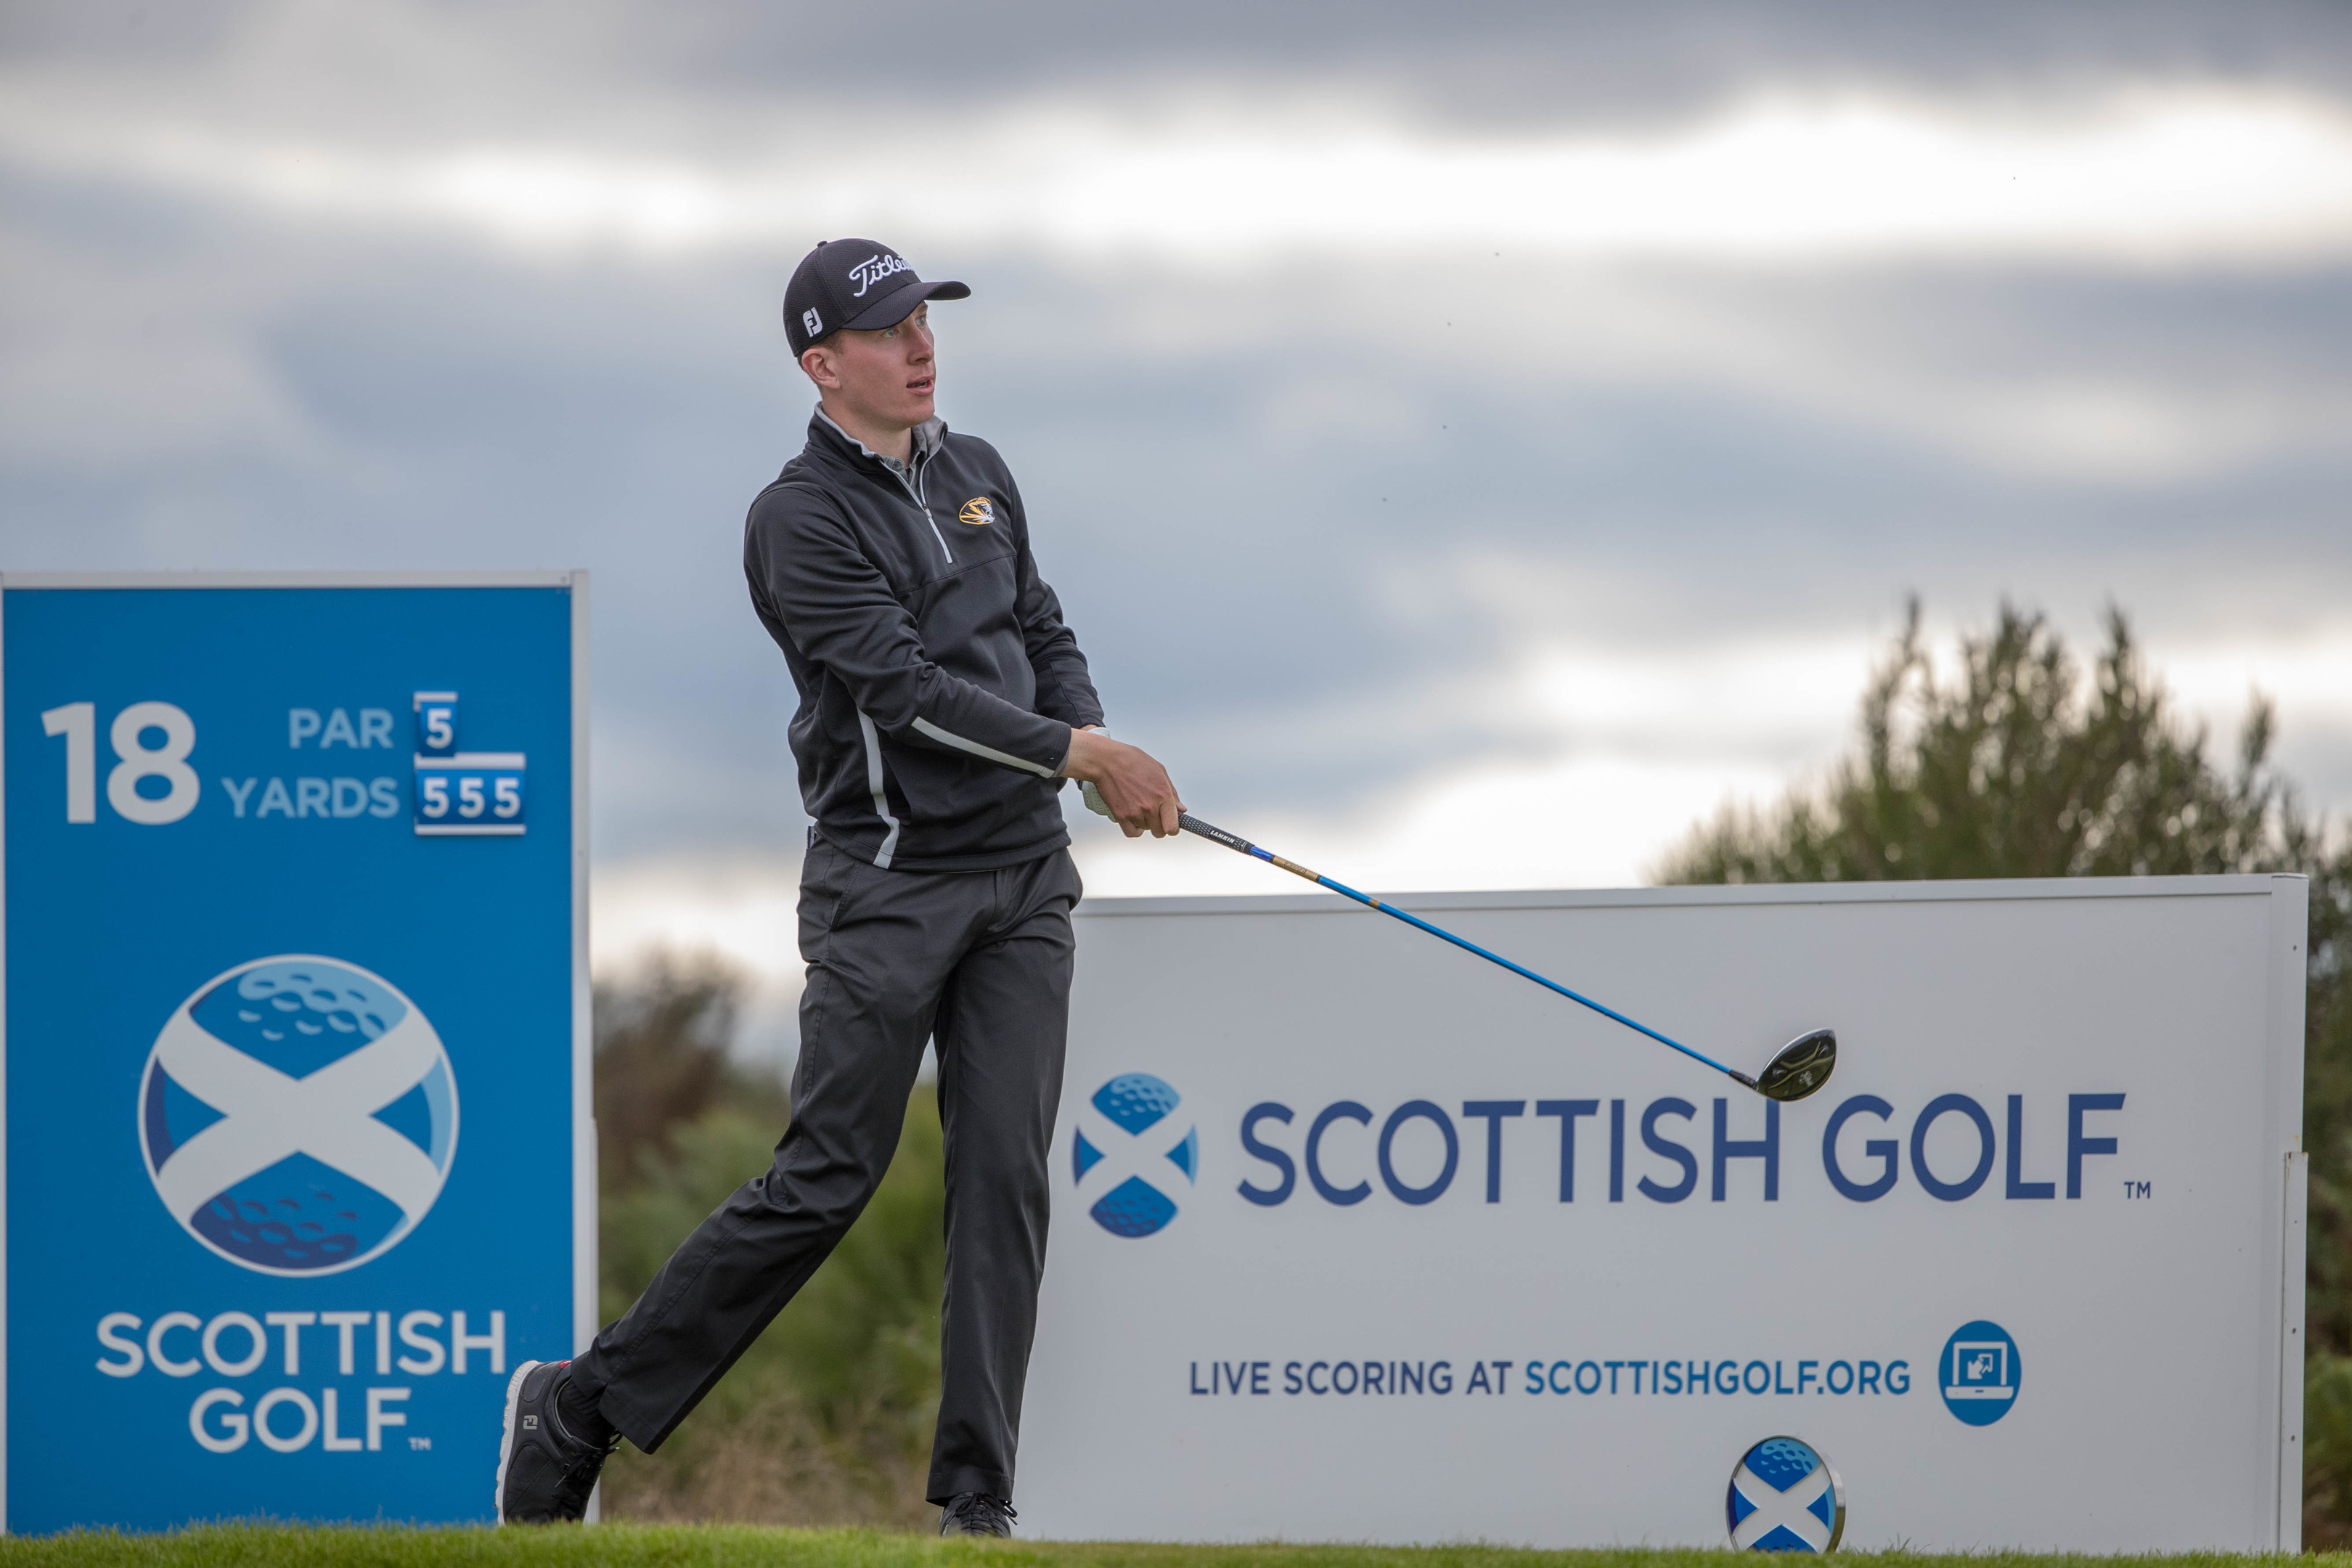 Euan Walker is one off the lead going into the final day of the Scottish Strokeplay Championship at Gleneagles.